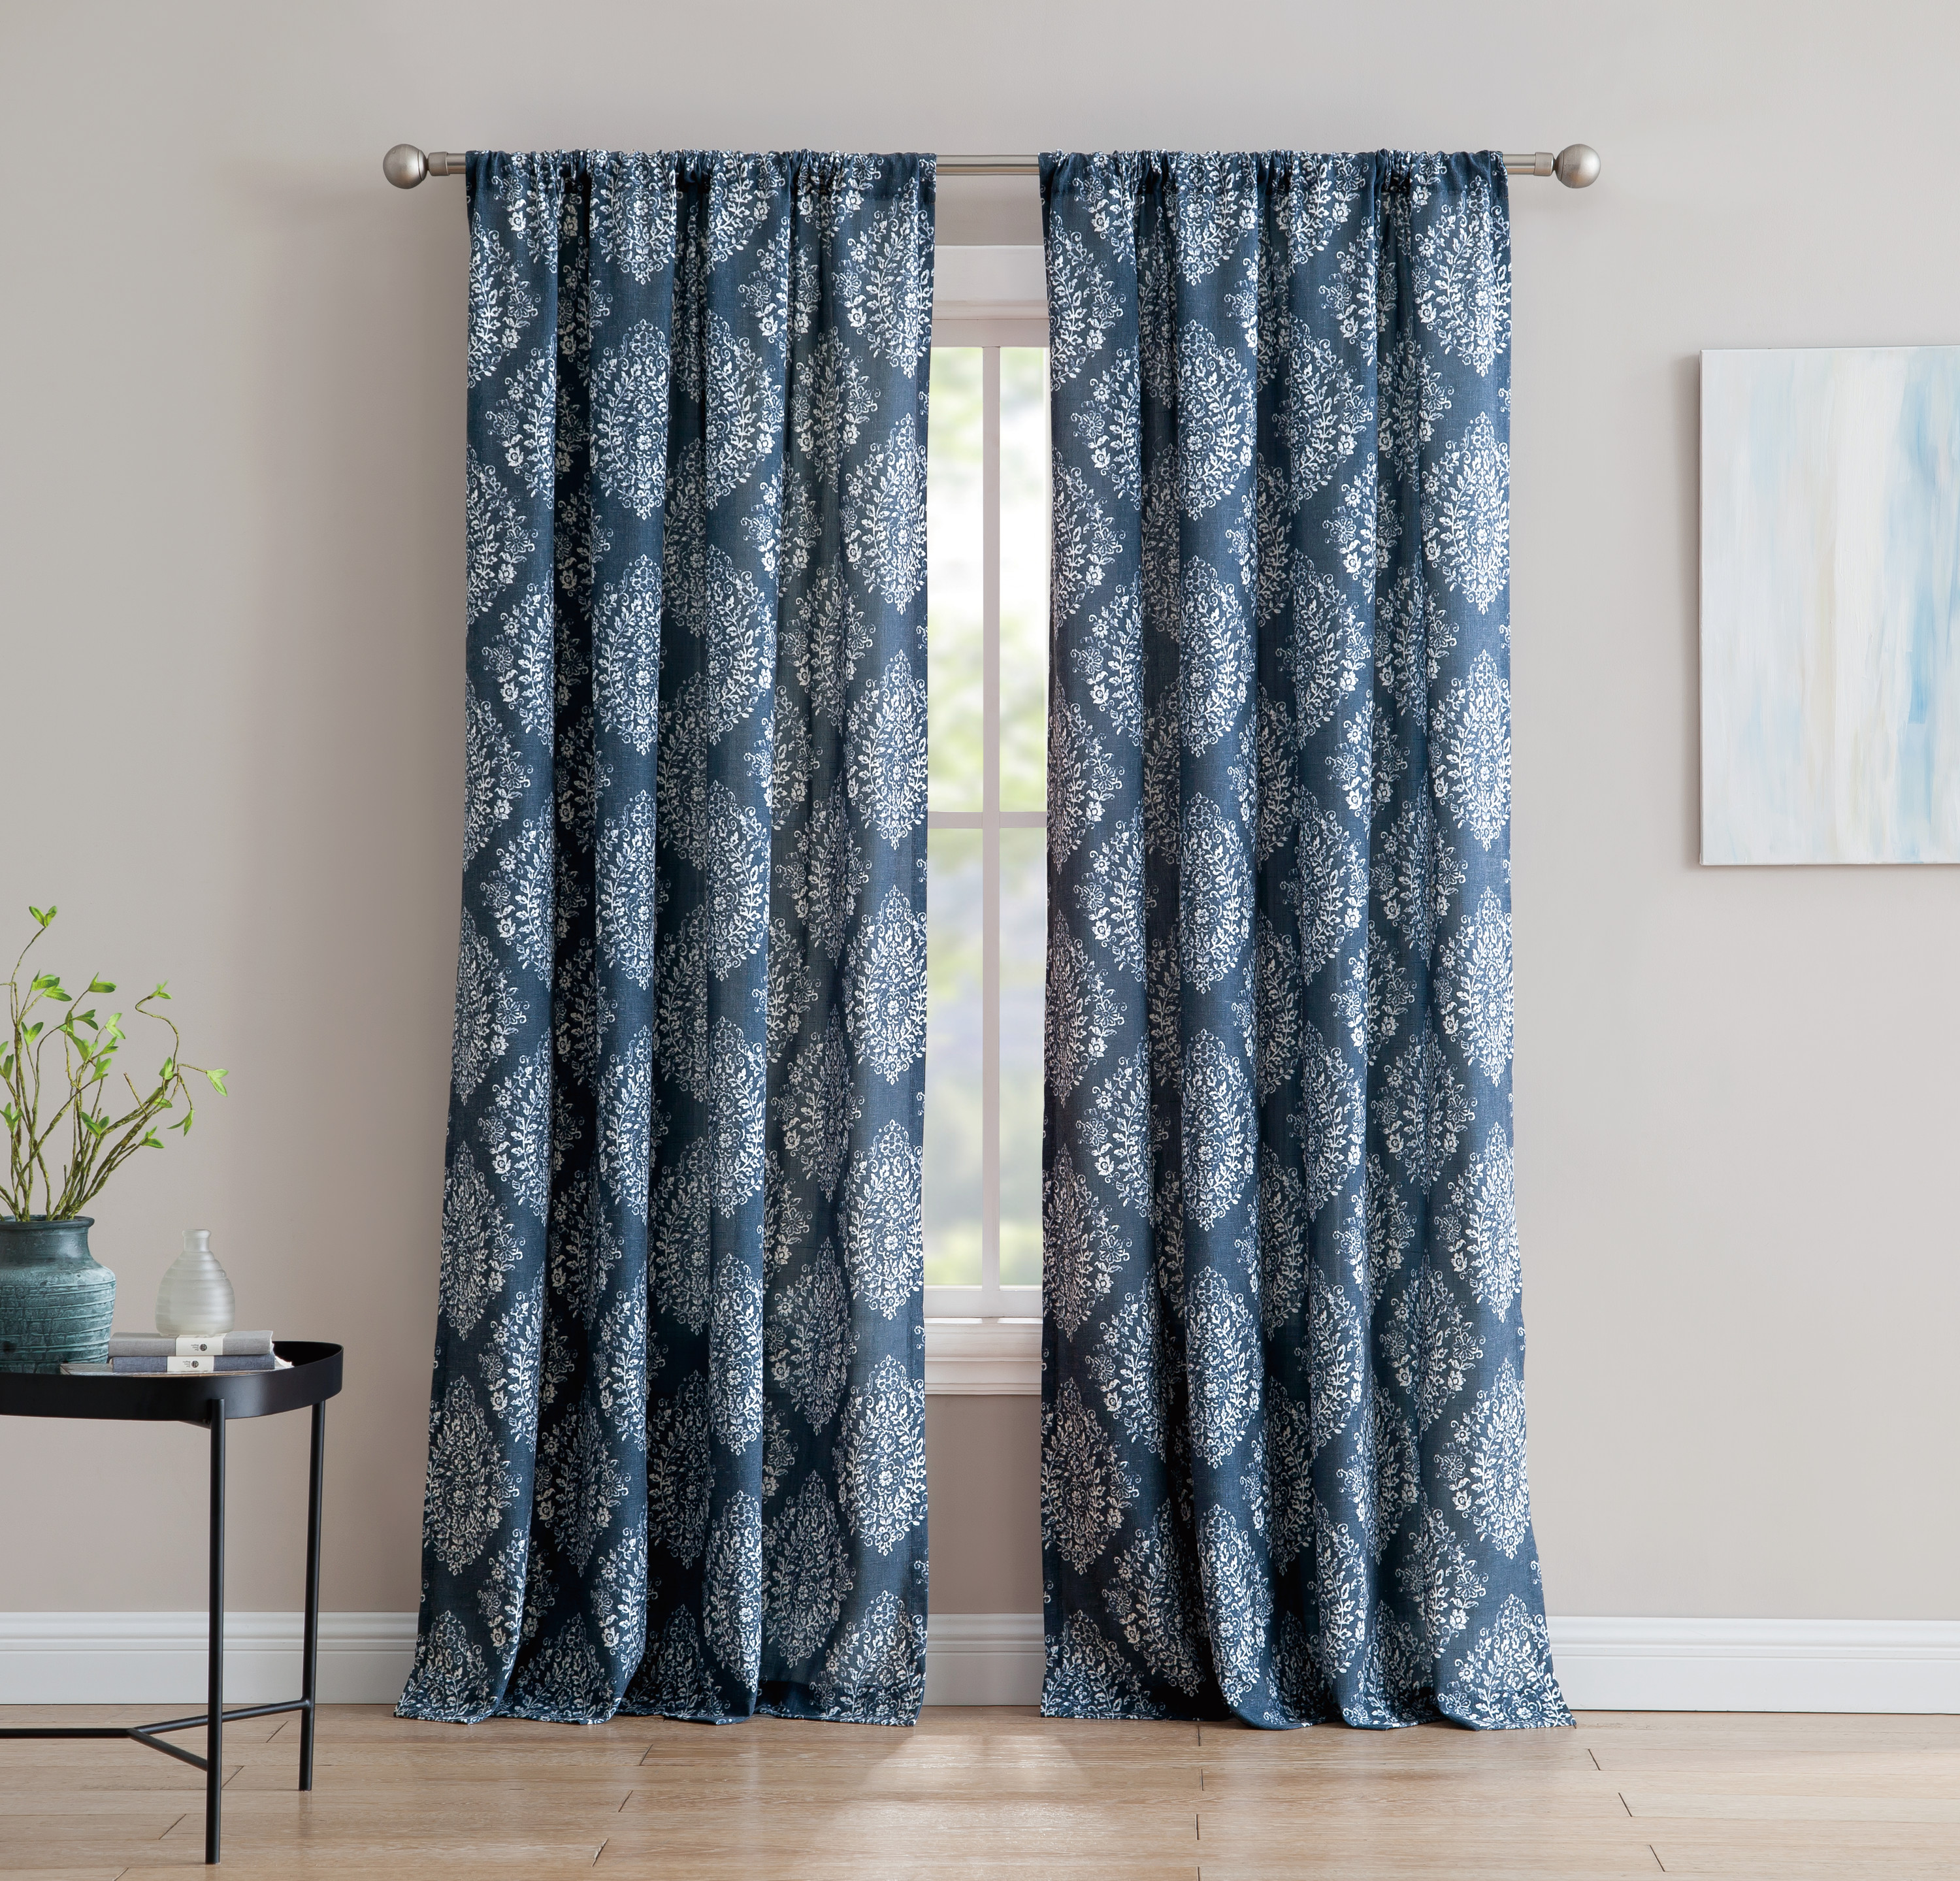 Alma 84-inch Window Curtain with Rod Pocket - Blue - Single Panel, Inspired Surroundings by 1888 Mills